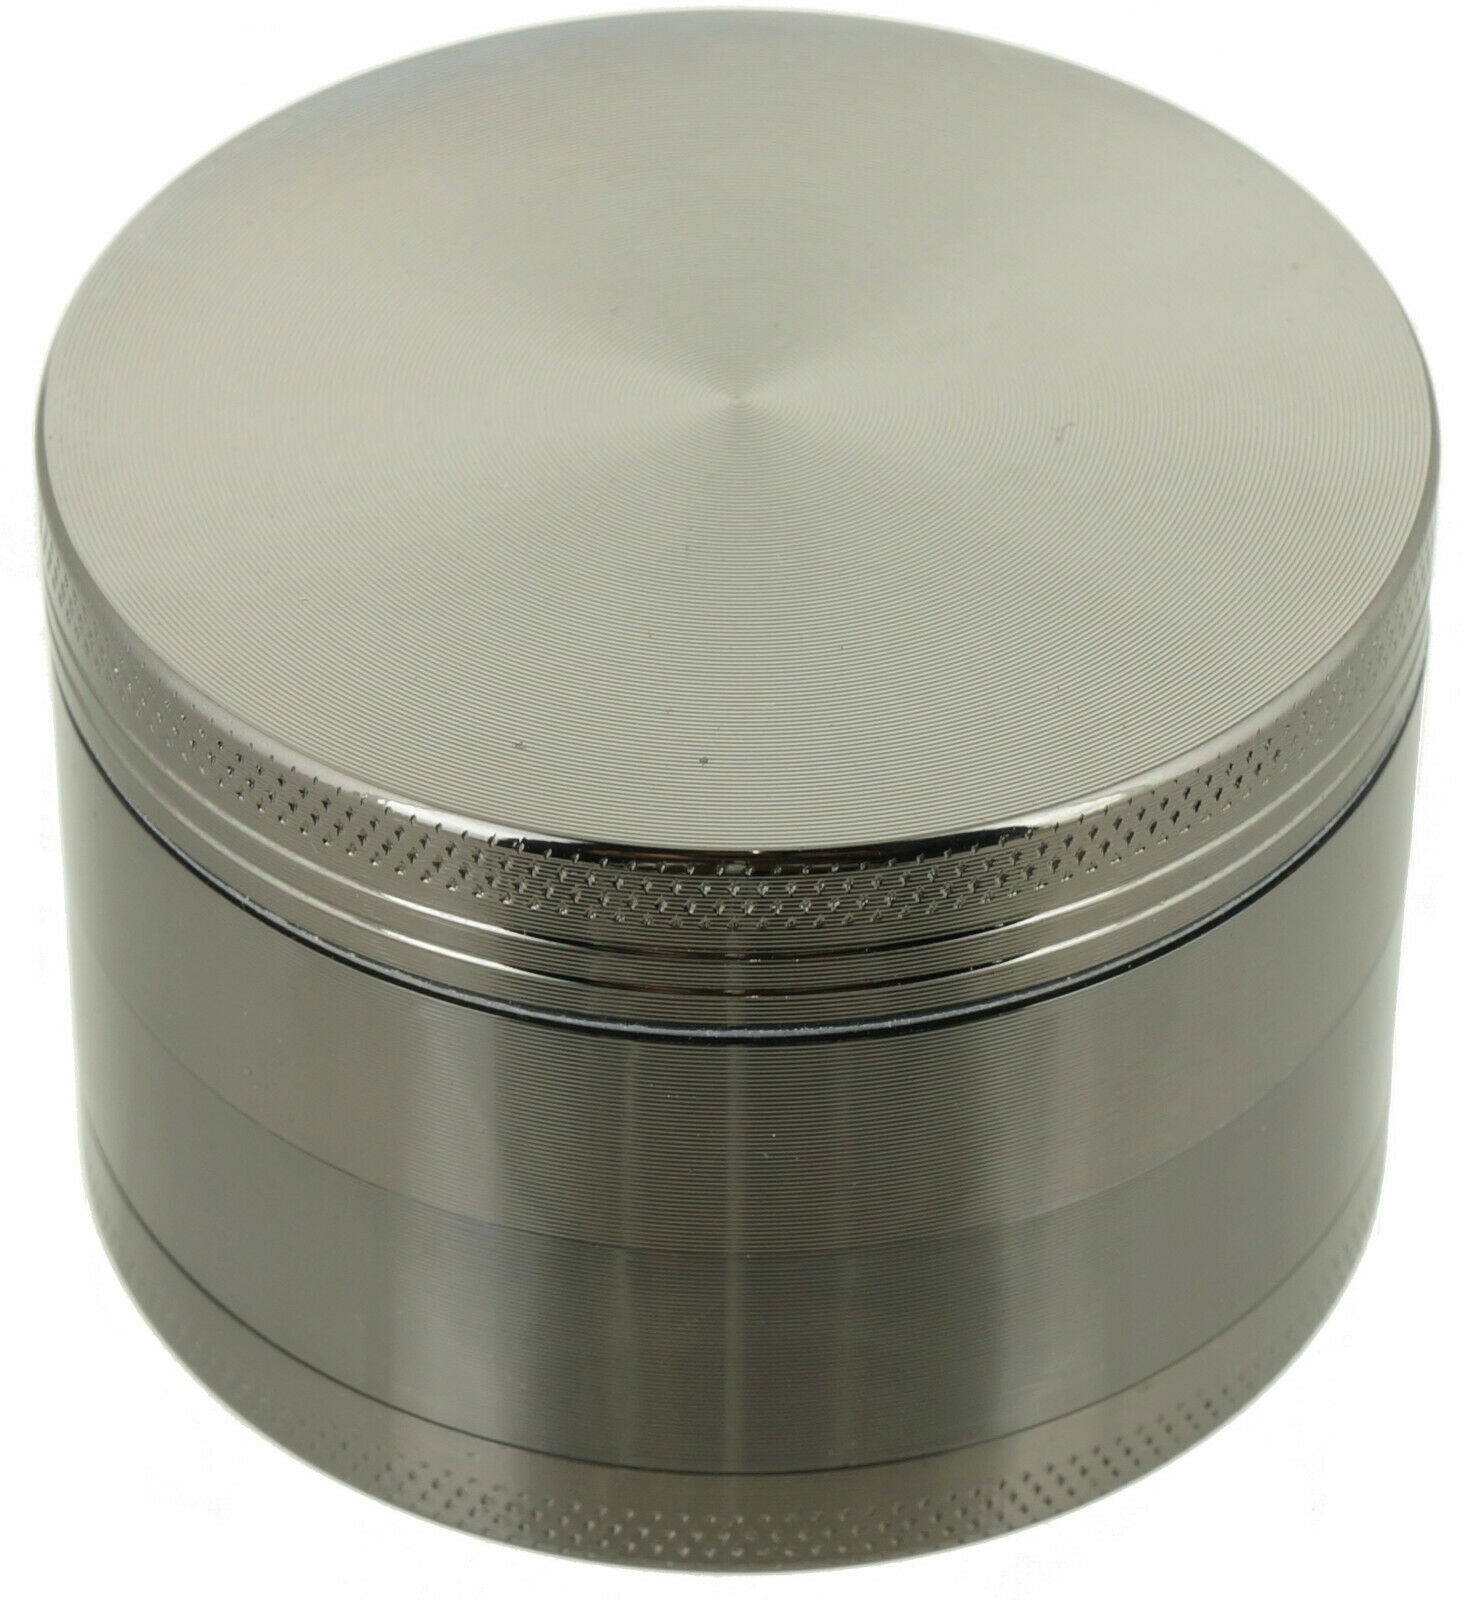 "2.5"" Tobacco Herb Grinder Spice Herbal 4 PC Metal Chromium A"